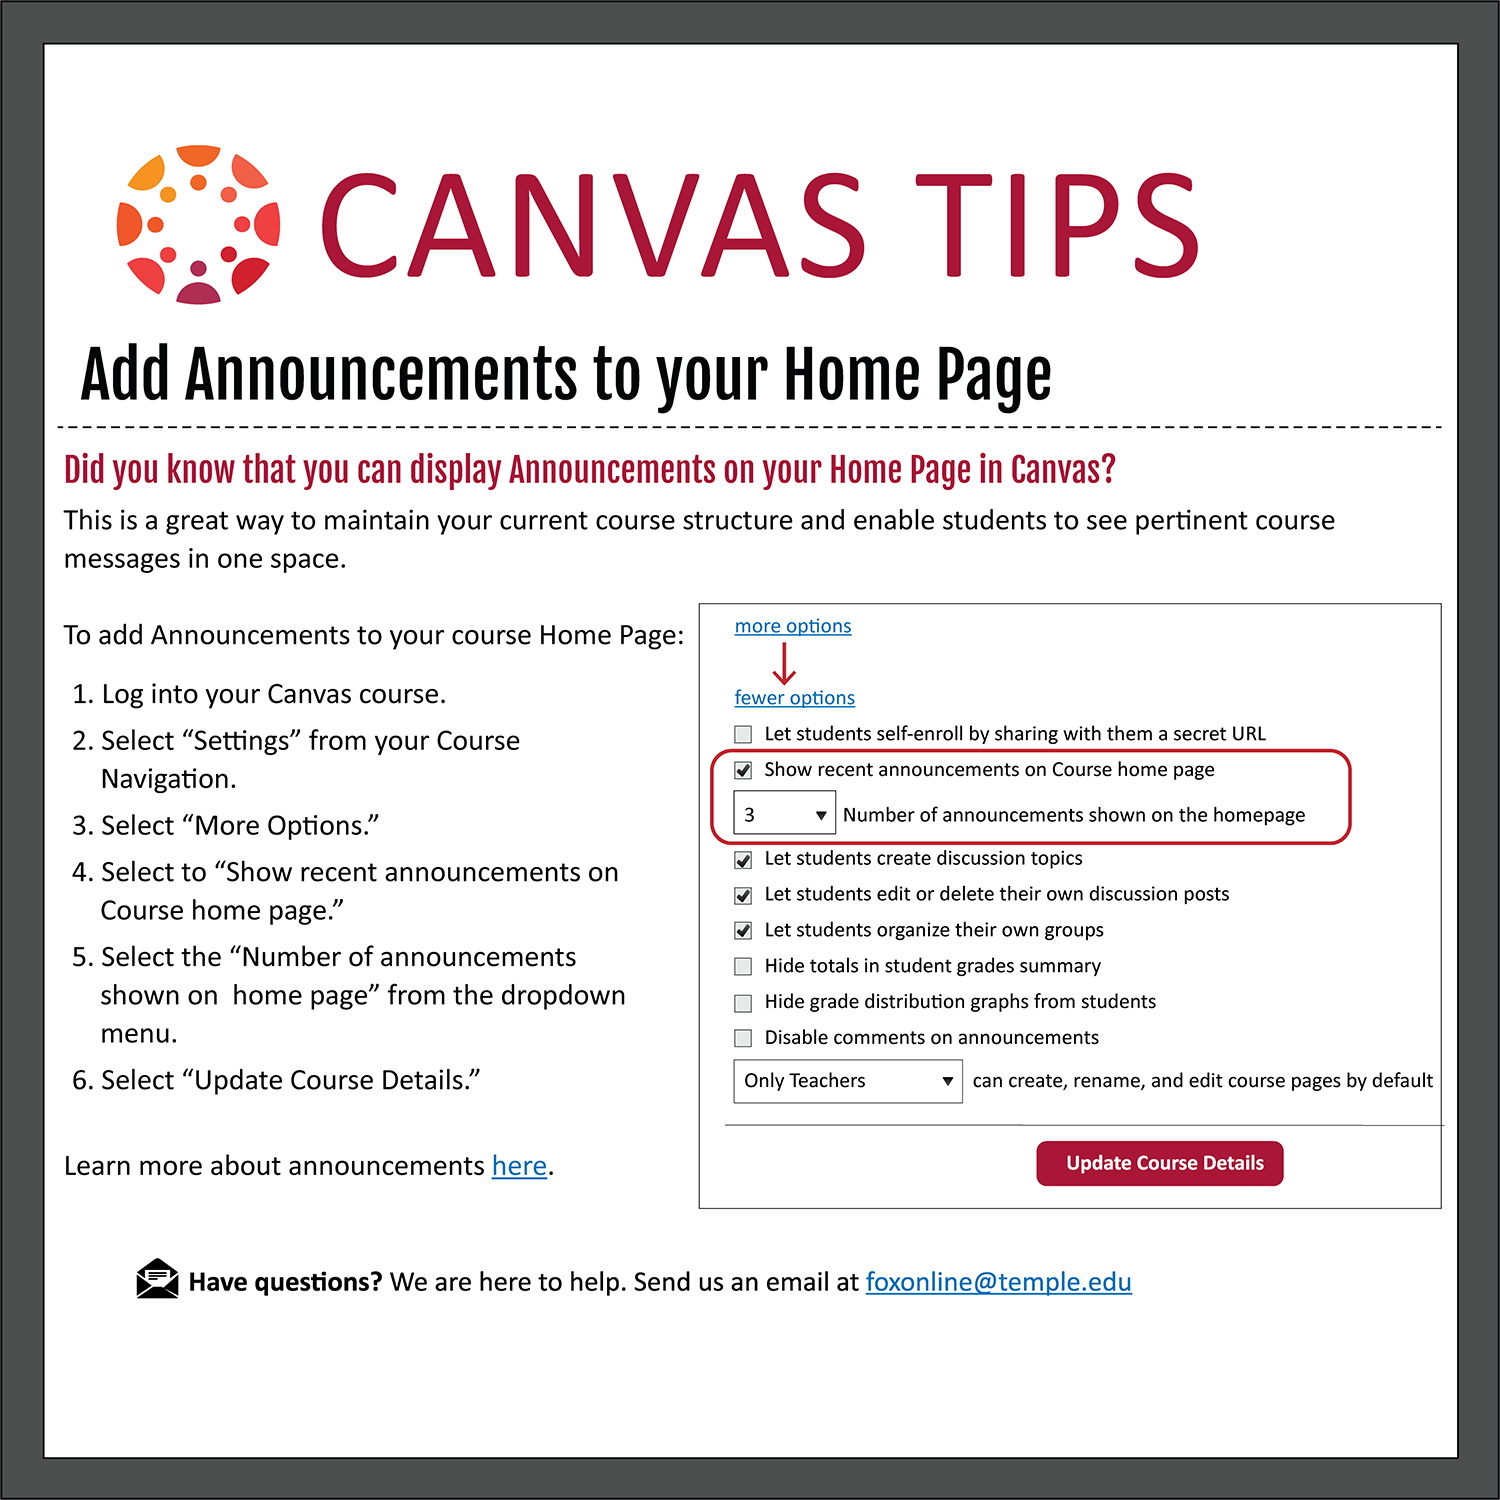 Tip 14: Add Announcements to Your Homepage